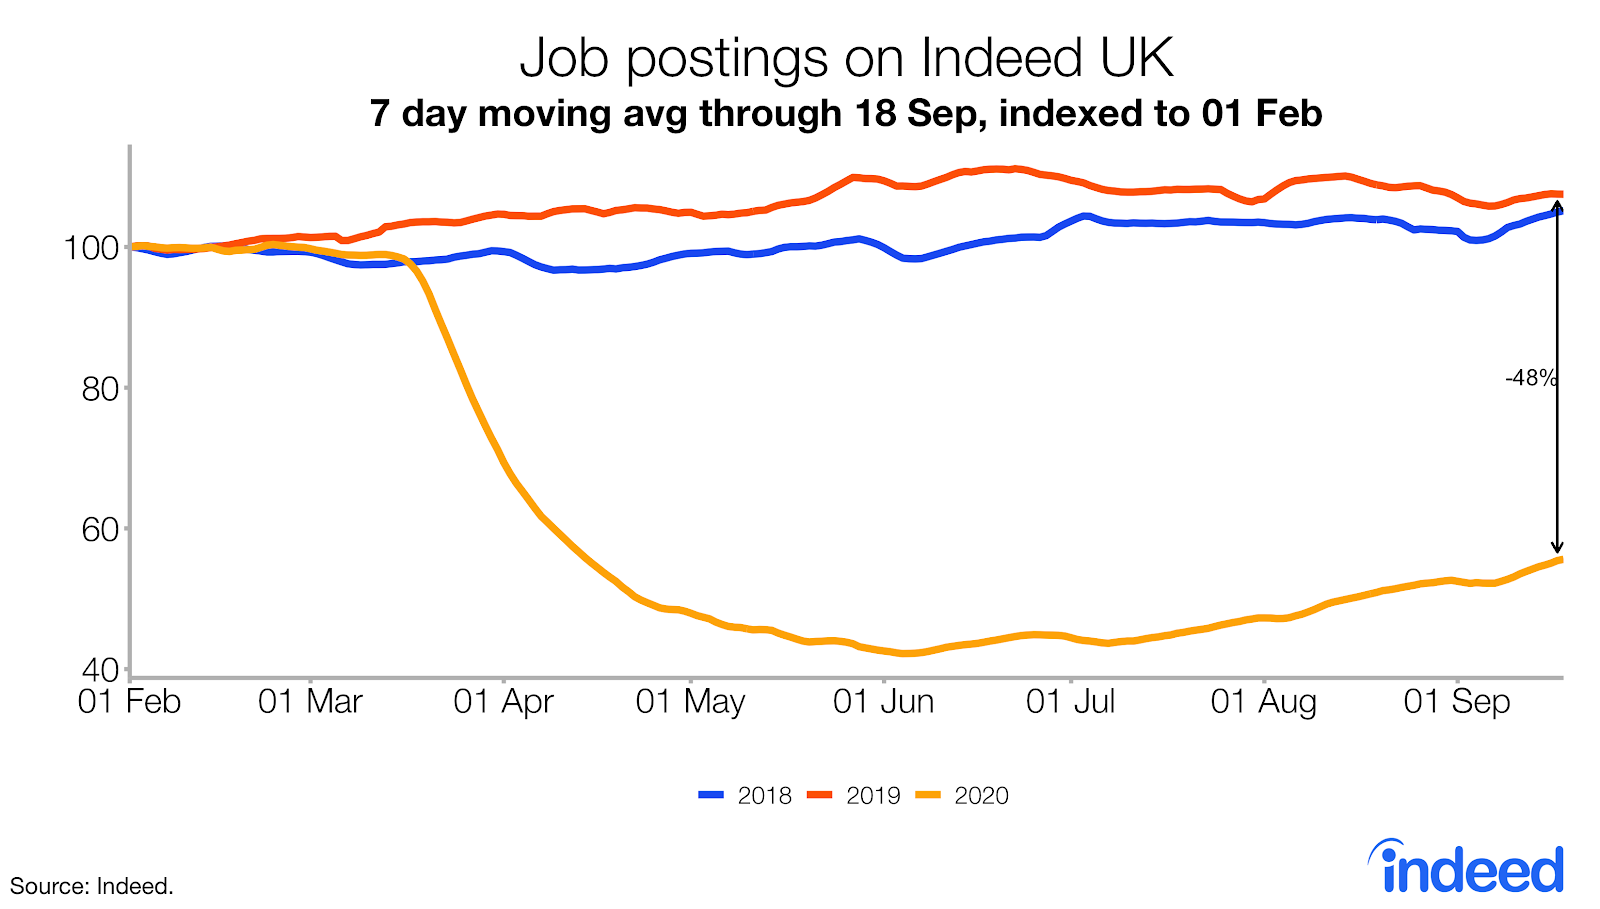 Line graph showing average job postings on Indeed UK since pandemic